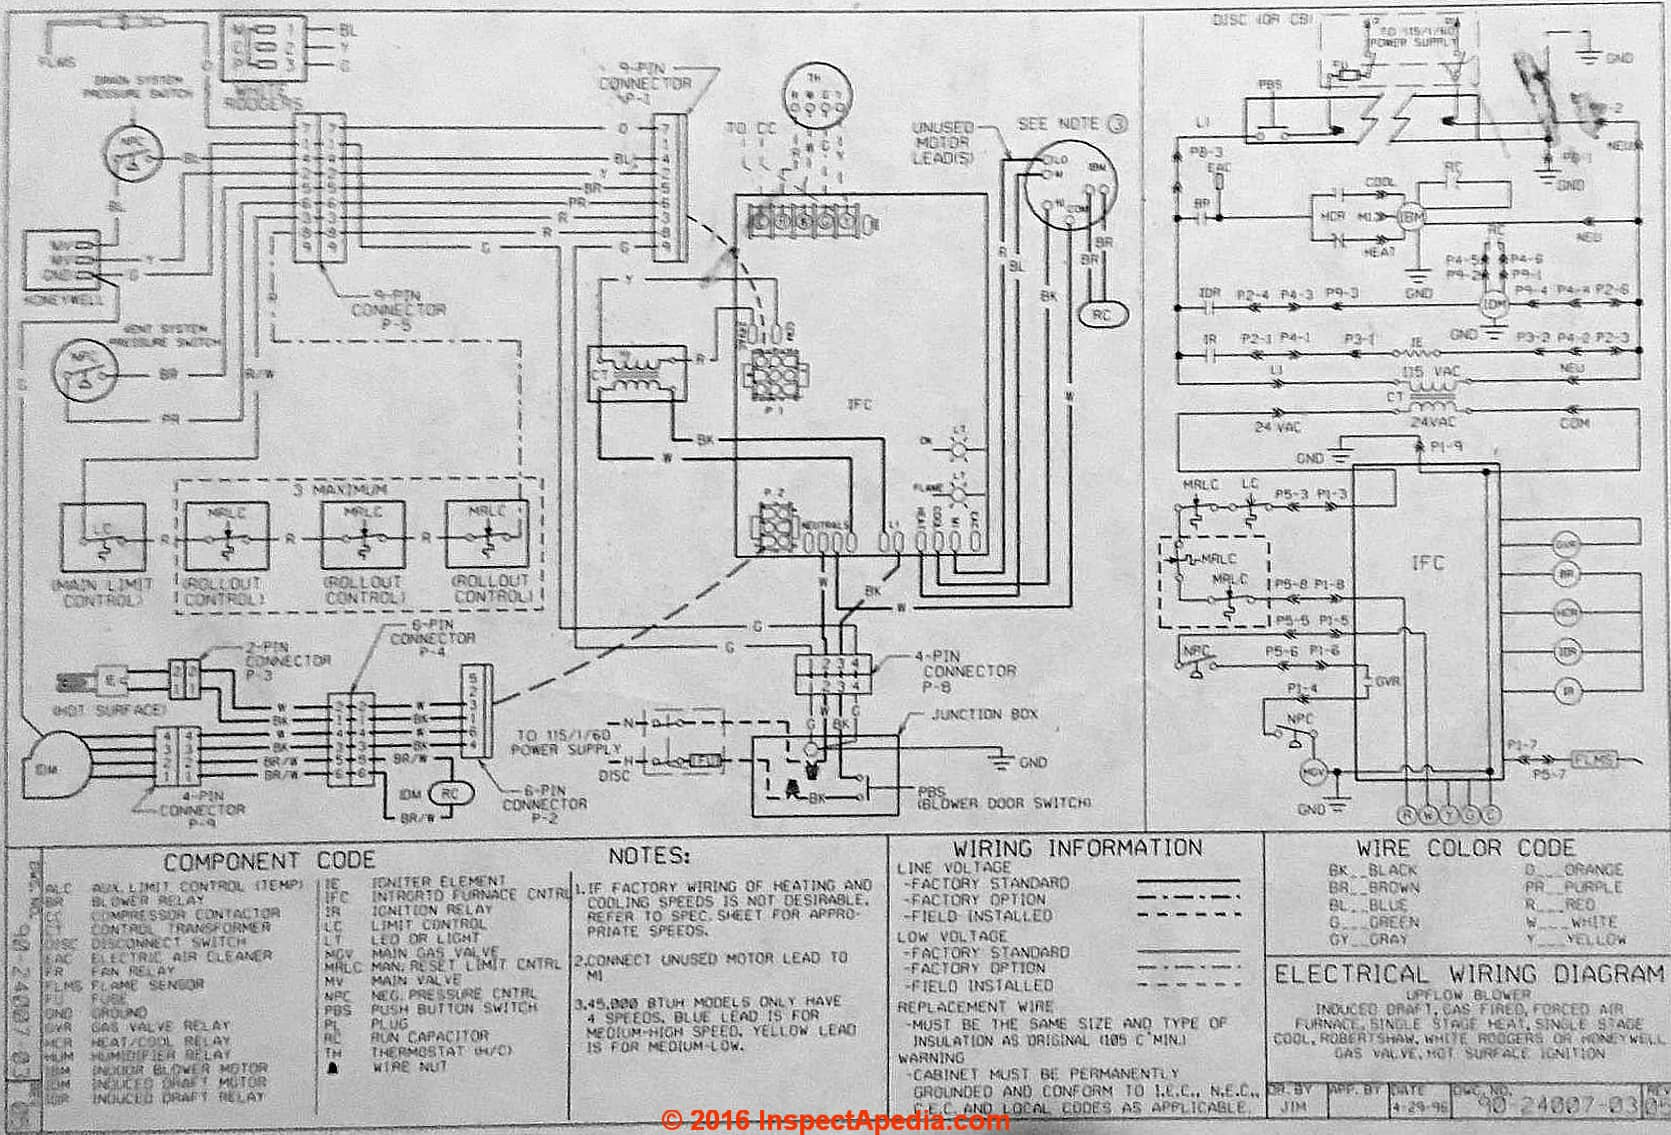 Rheem_AHU_Wiring_Diagram_IAP air conditioner heat pump faqs Heat Pump Thermostat Wiring Diagrams at gsmx.co